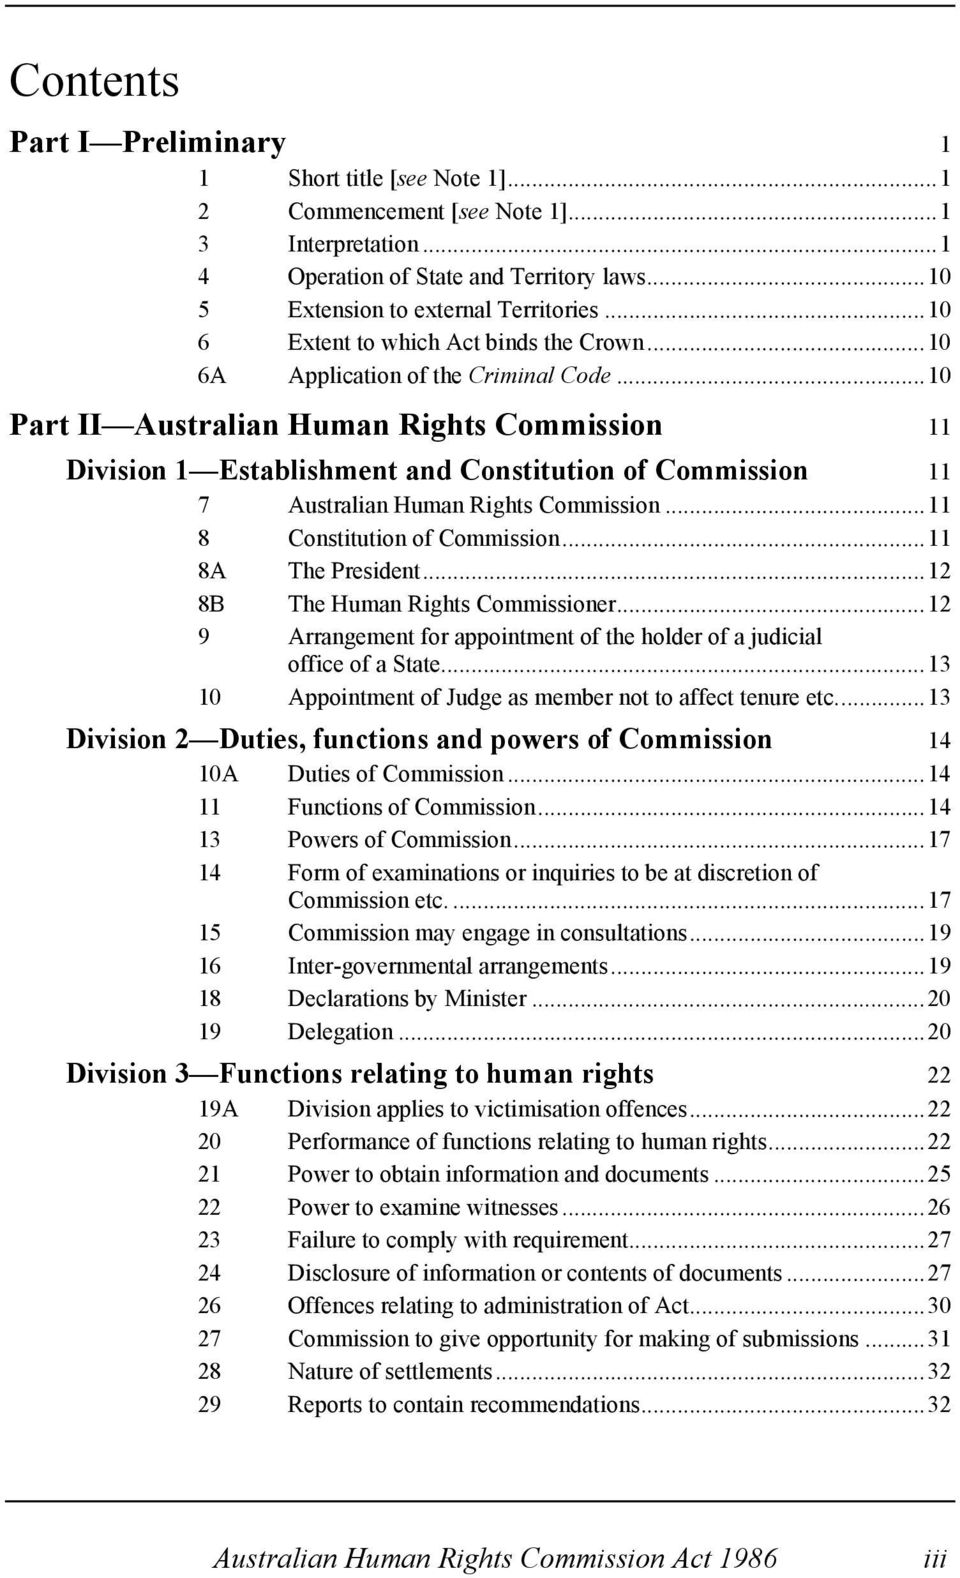 ..10 Part II Australian Human Rights Commission 11 Division 1 Establishment and Constitution of Commission 11 7 Australian Human Rights Commission...11 8 Constitution of Commission.